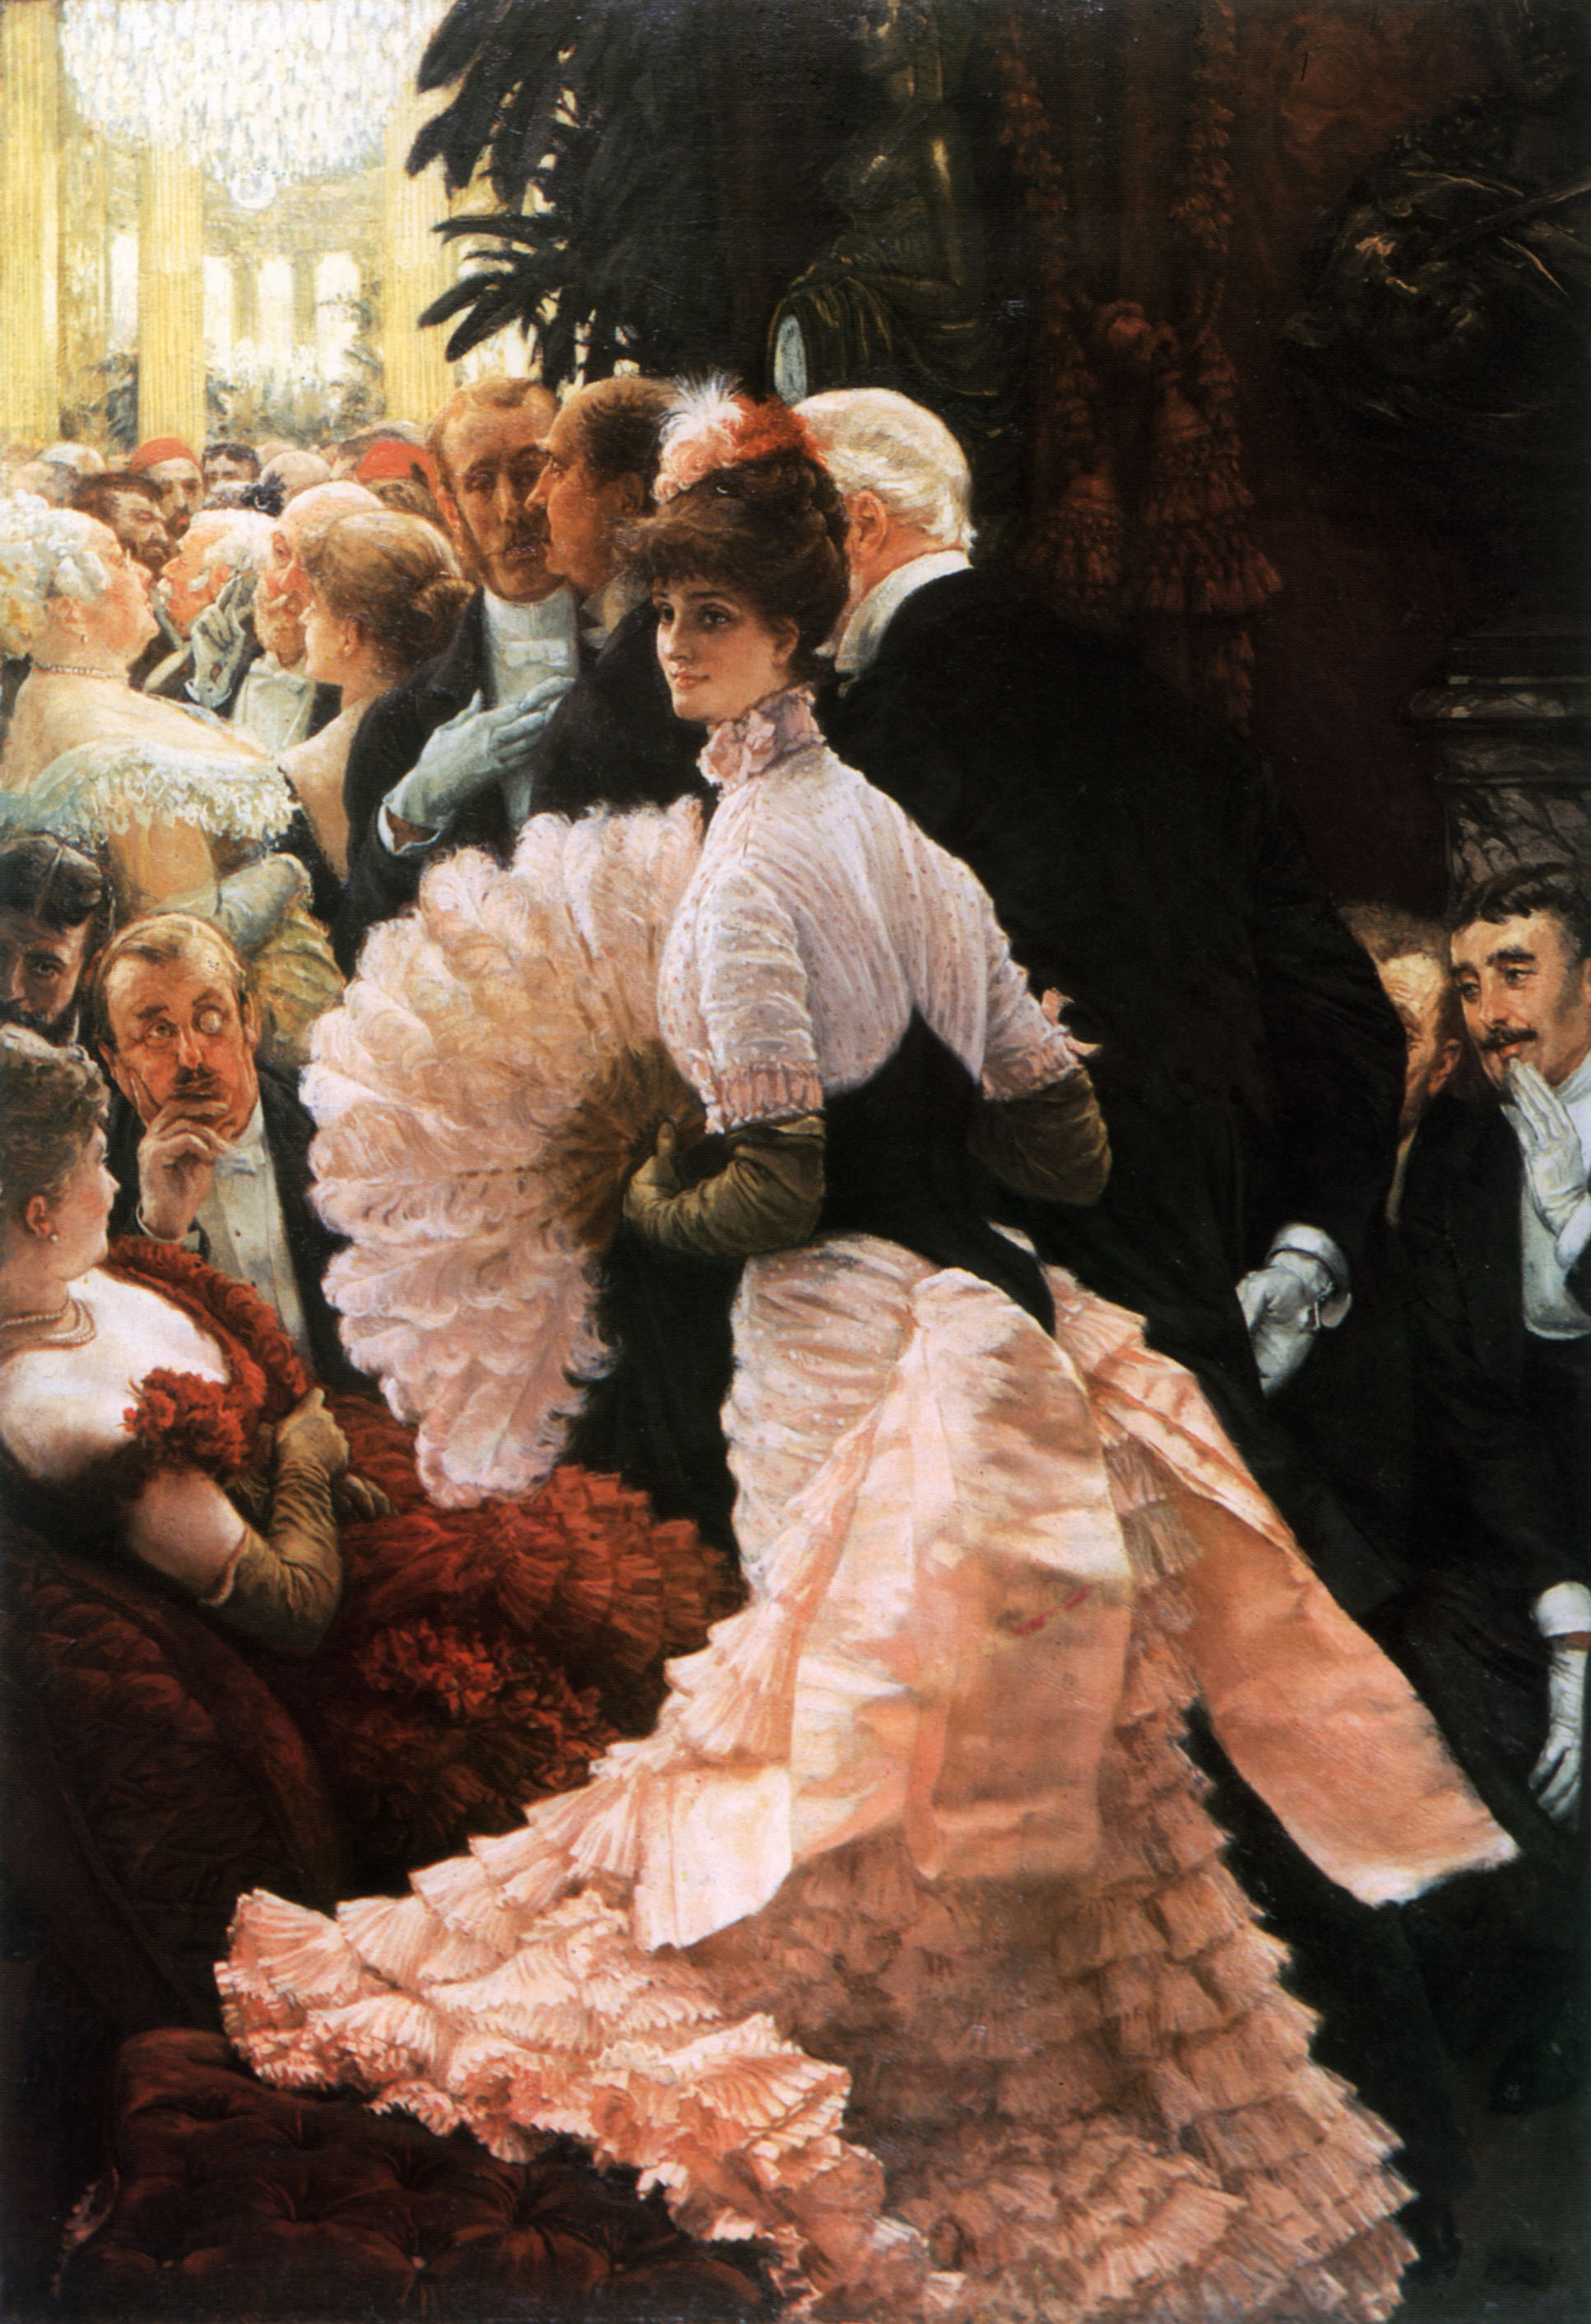 http://upload.wikimedia.org/wikipedia/commons/5/50/James_Tissot_-_A_Woman_of_Ambition.jpg